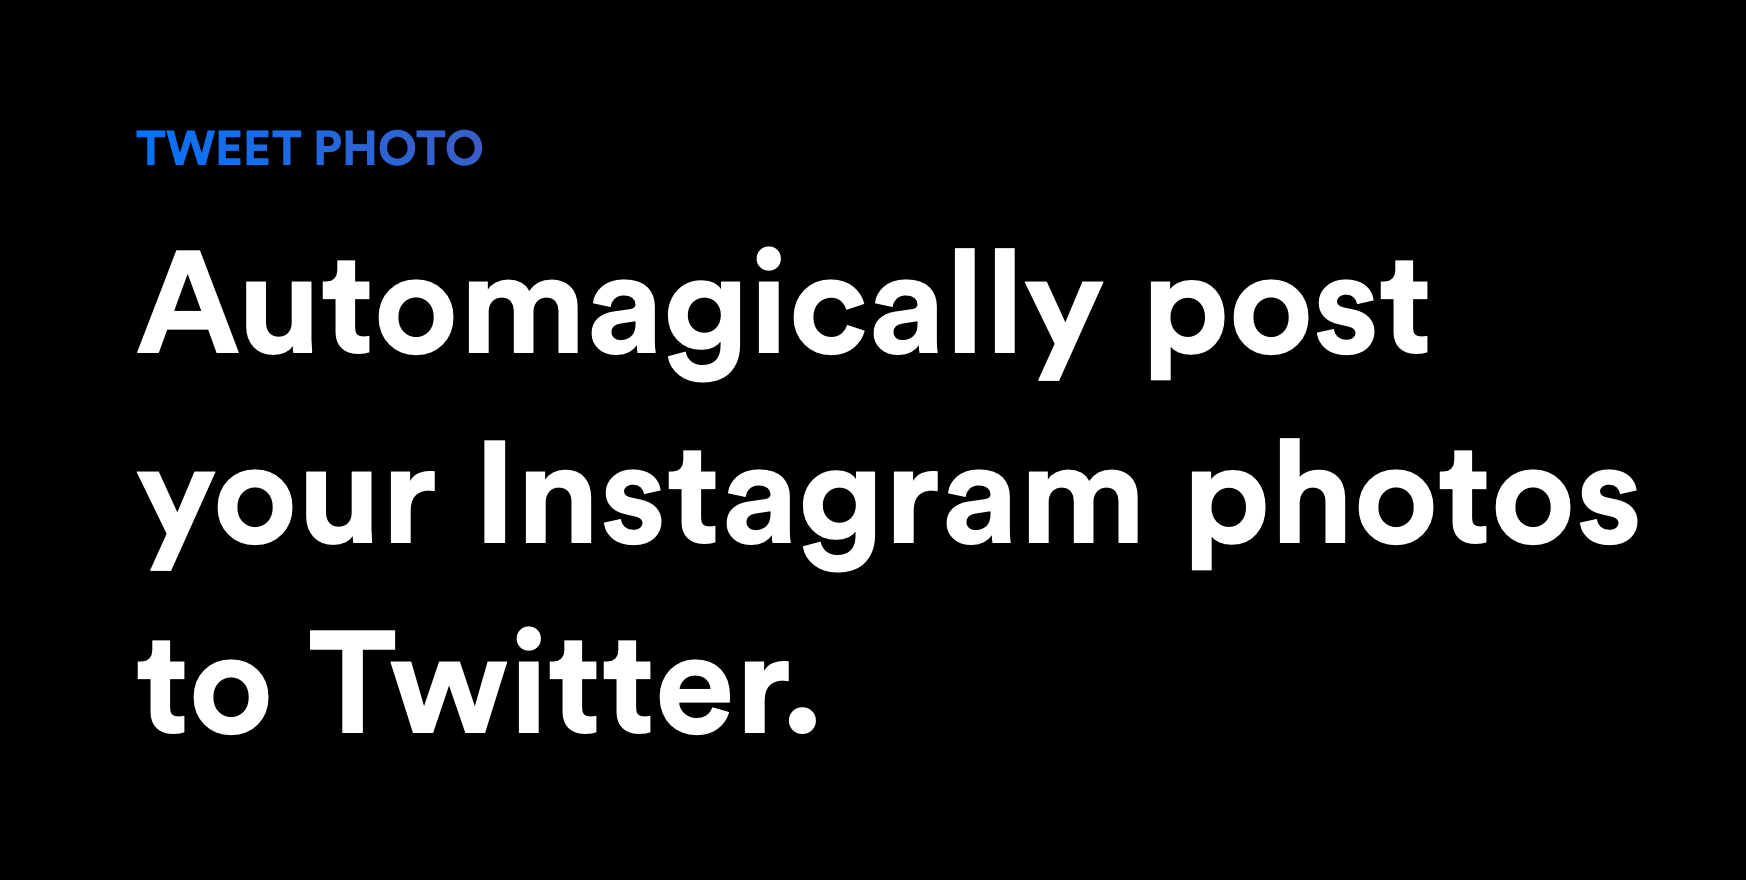 A better way to post your Instagram photos to Twitter